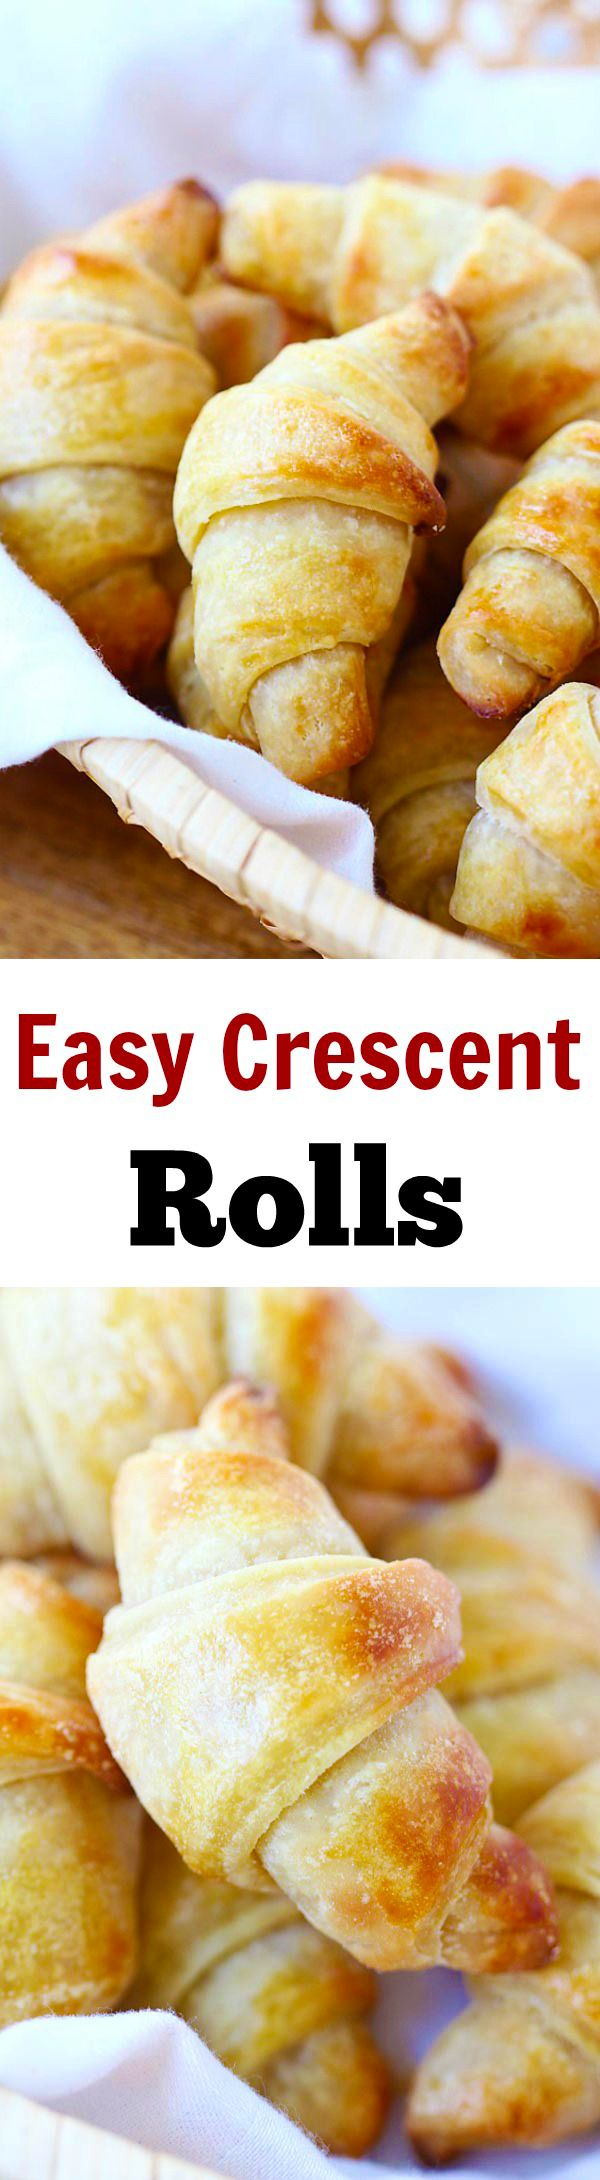 Crescent Rolls – Easy homemade crescent rolls recipe that anyone can make. Flaky, buttery, and fluffy, these rolls are the best!! | rasamalaysia.com